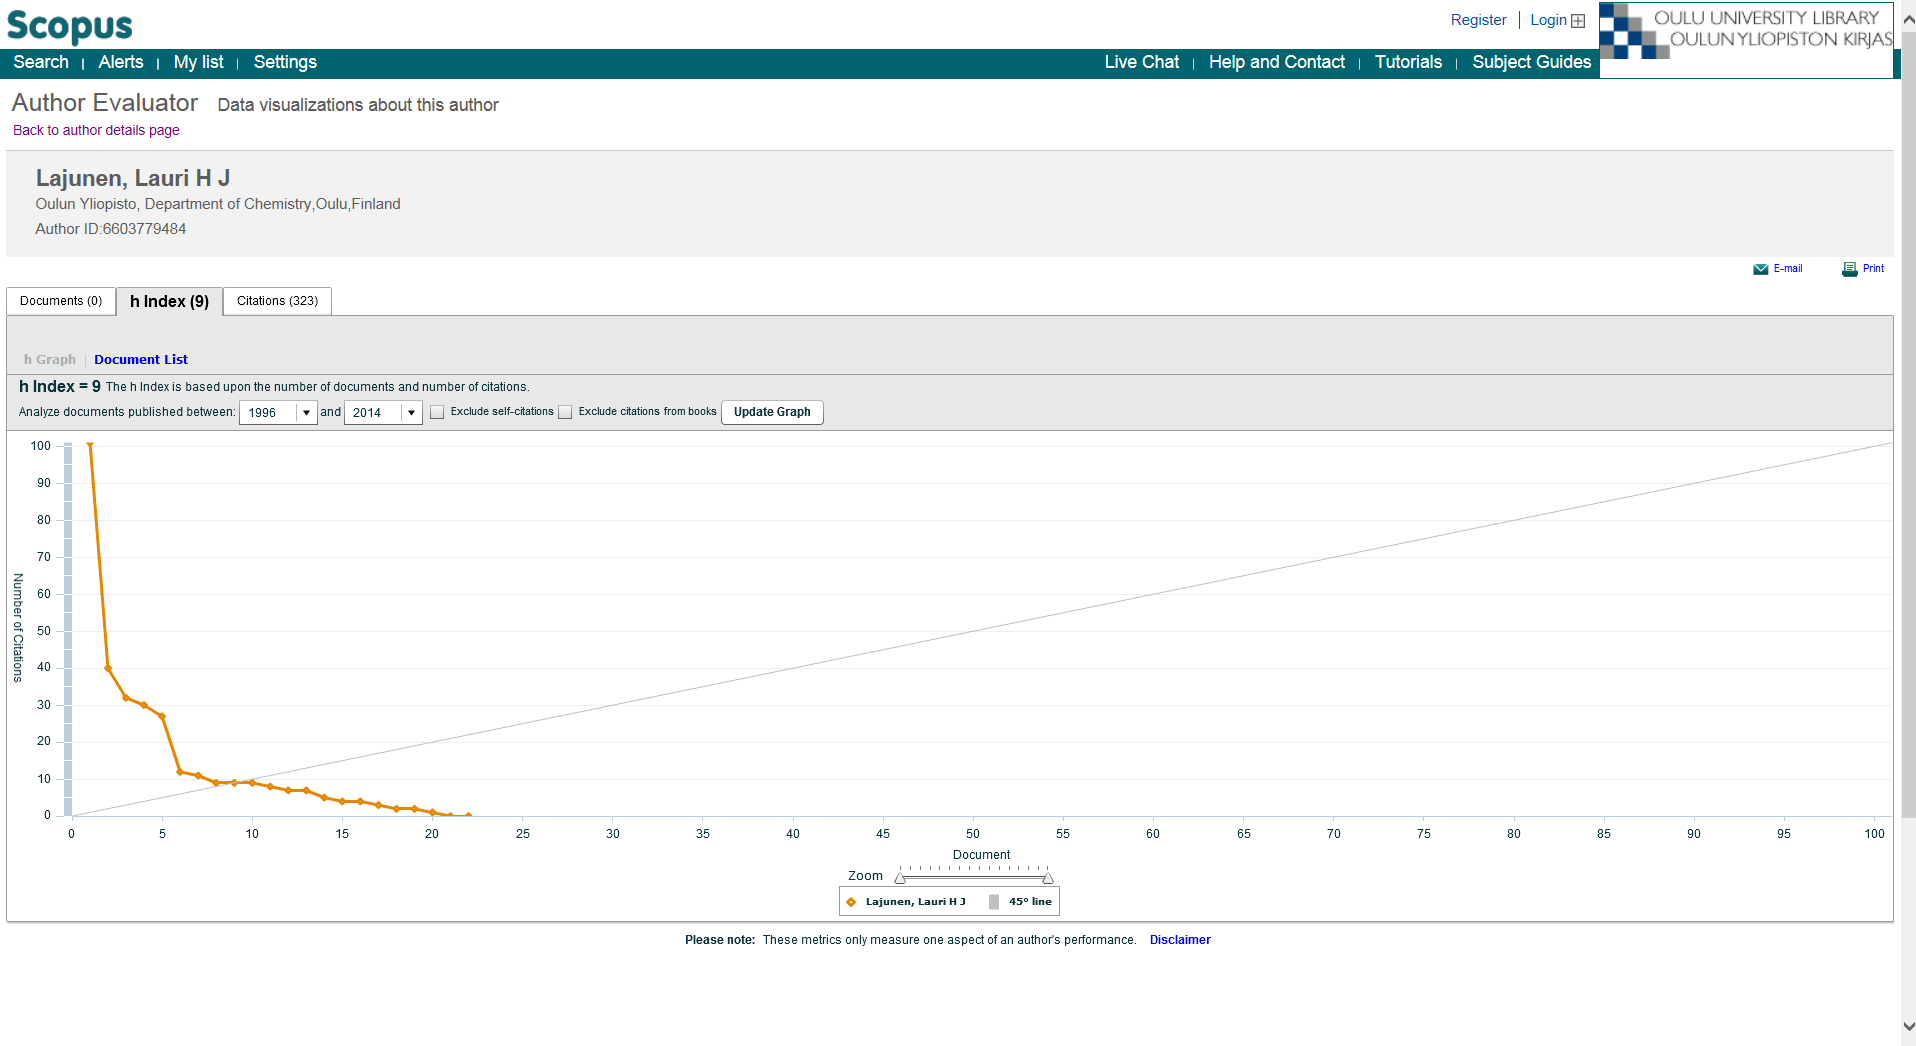 Scopus - Evaluation based on scientific publishing - LibGuides at